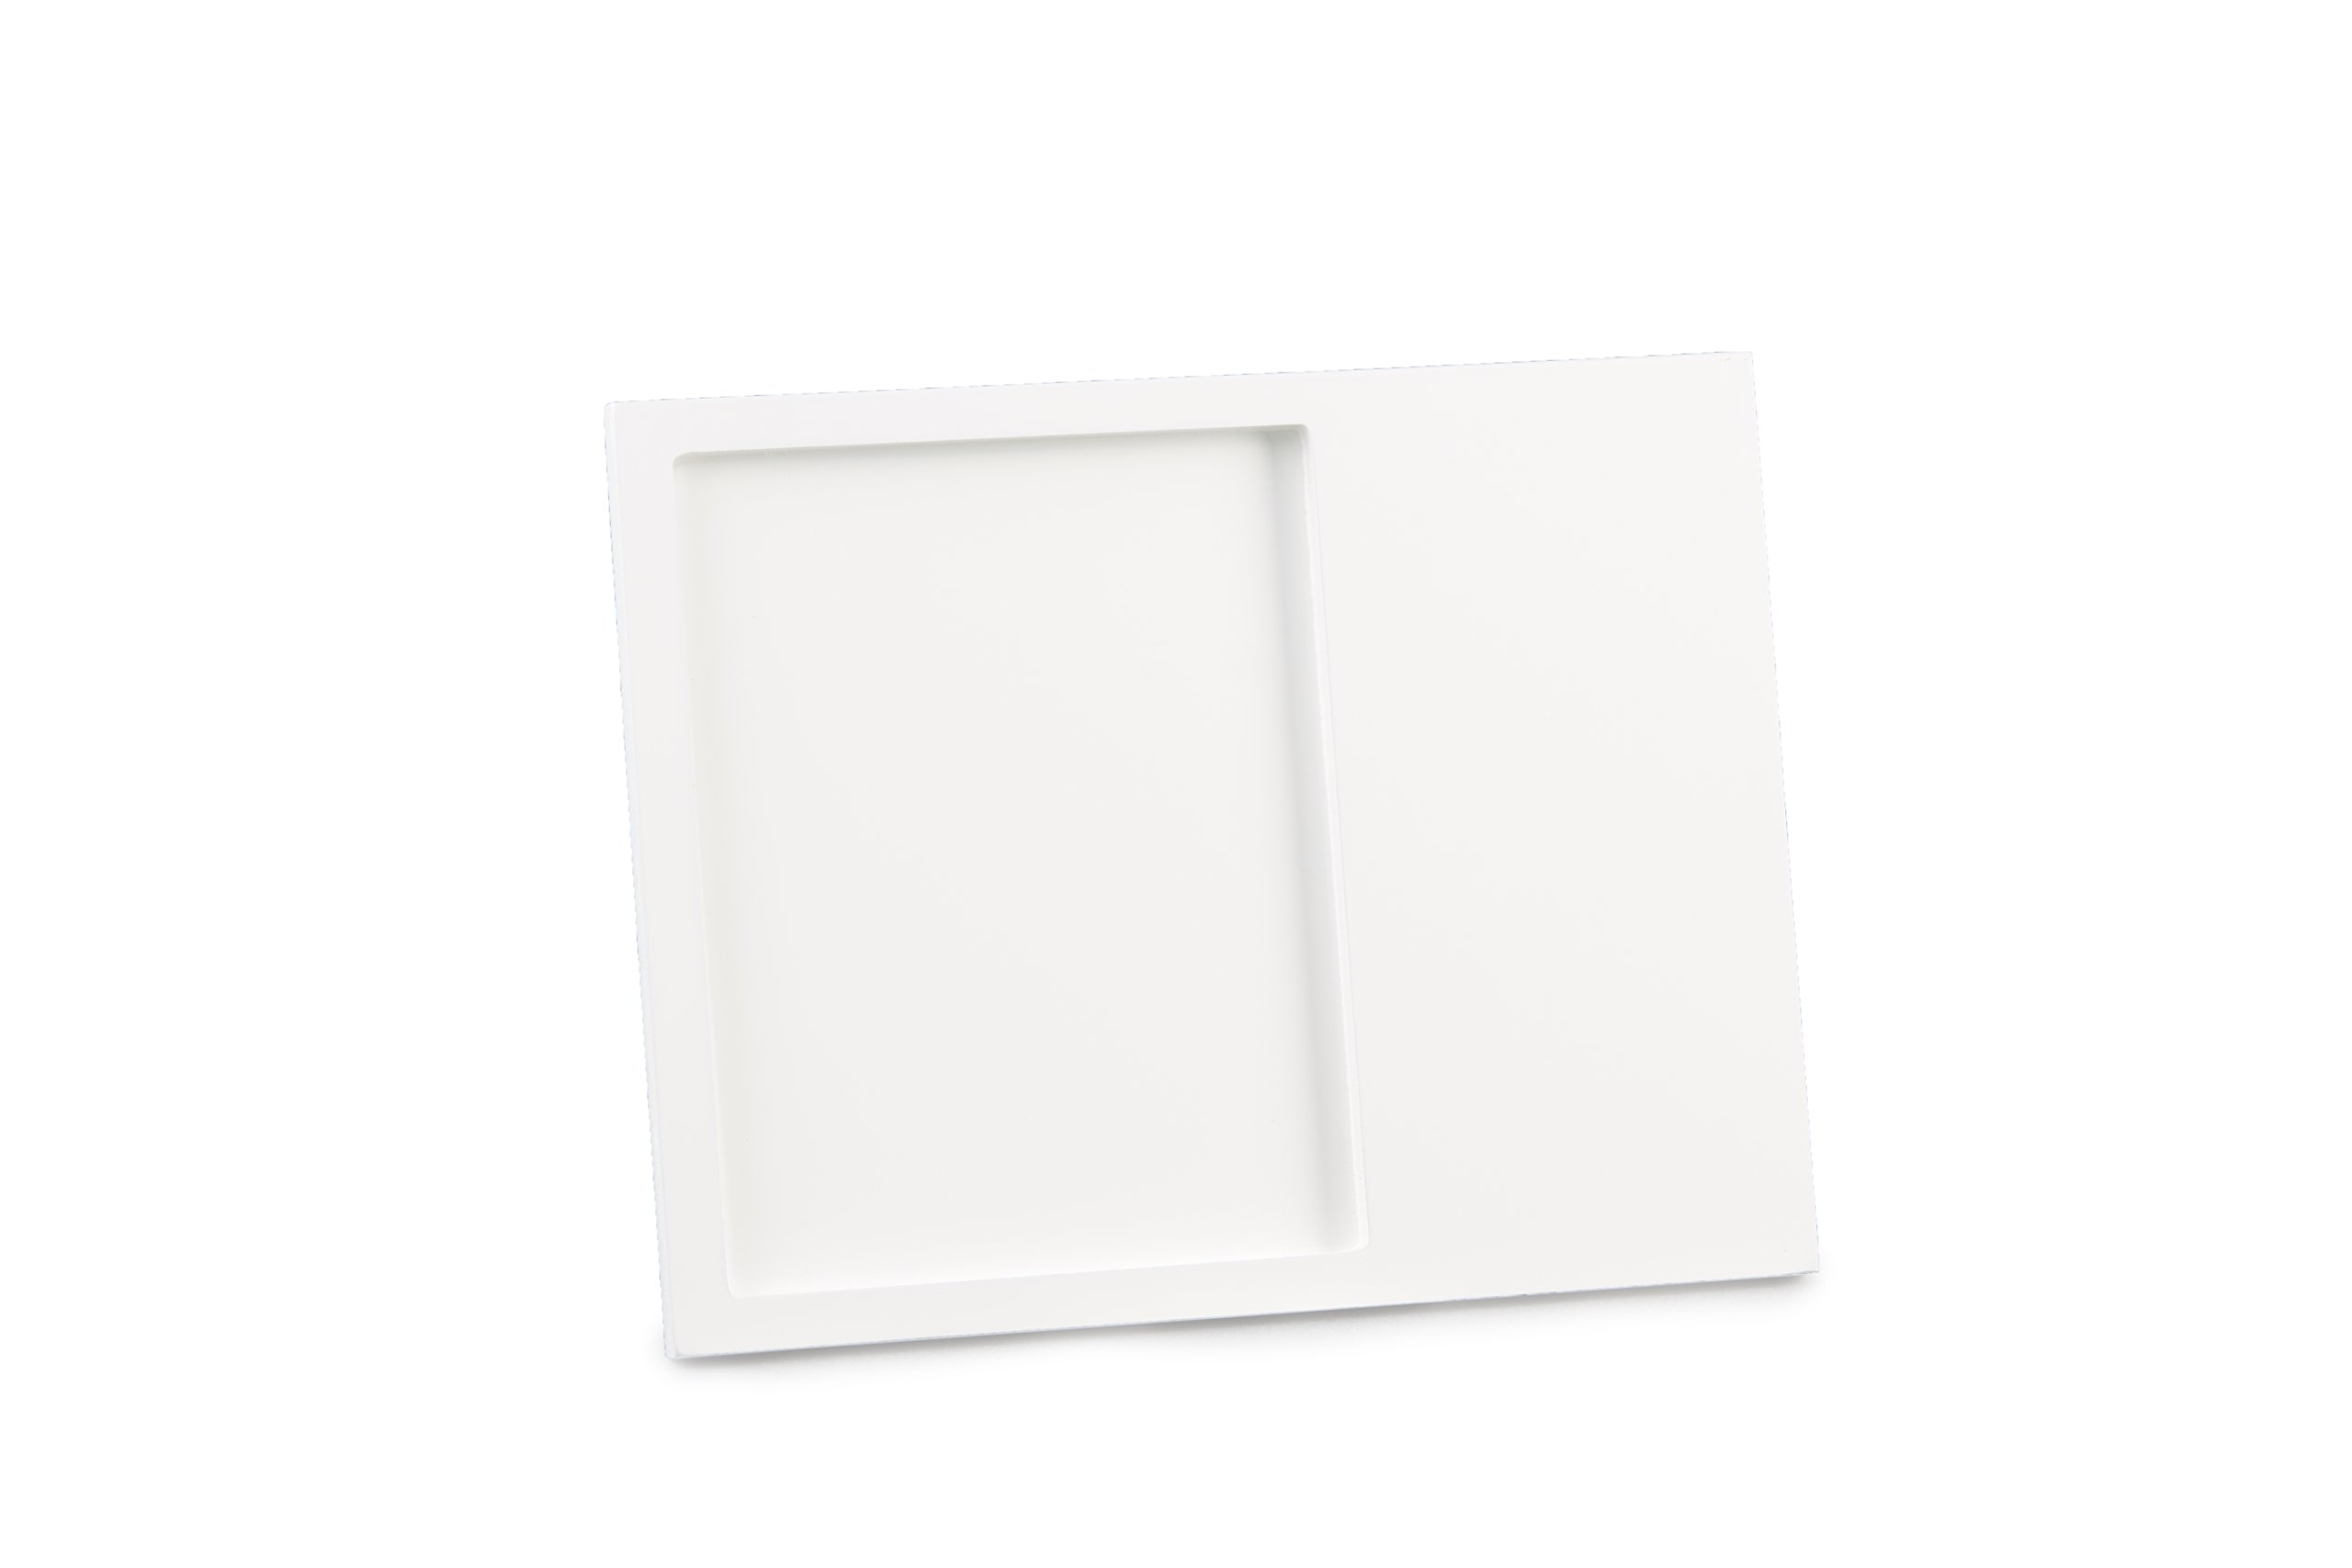 Baby Handprint Picture Frame Clay Kit for Newborn Girls and Boys by Baby Yei - The Photo Frames are Fully Painted White-Prevents Mold Creation-Safe for Treasuring your Angel's First Precious Memories by Baby Yei (Image #5)